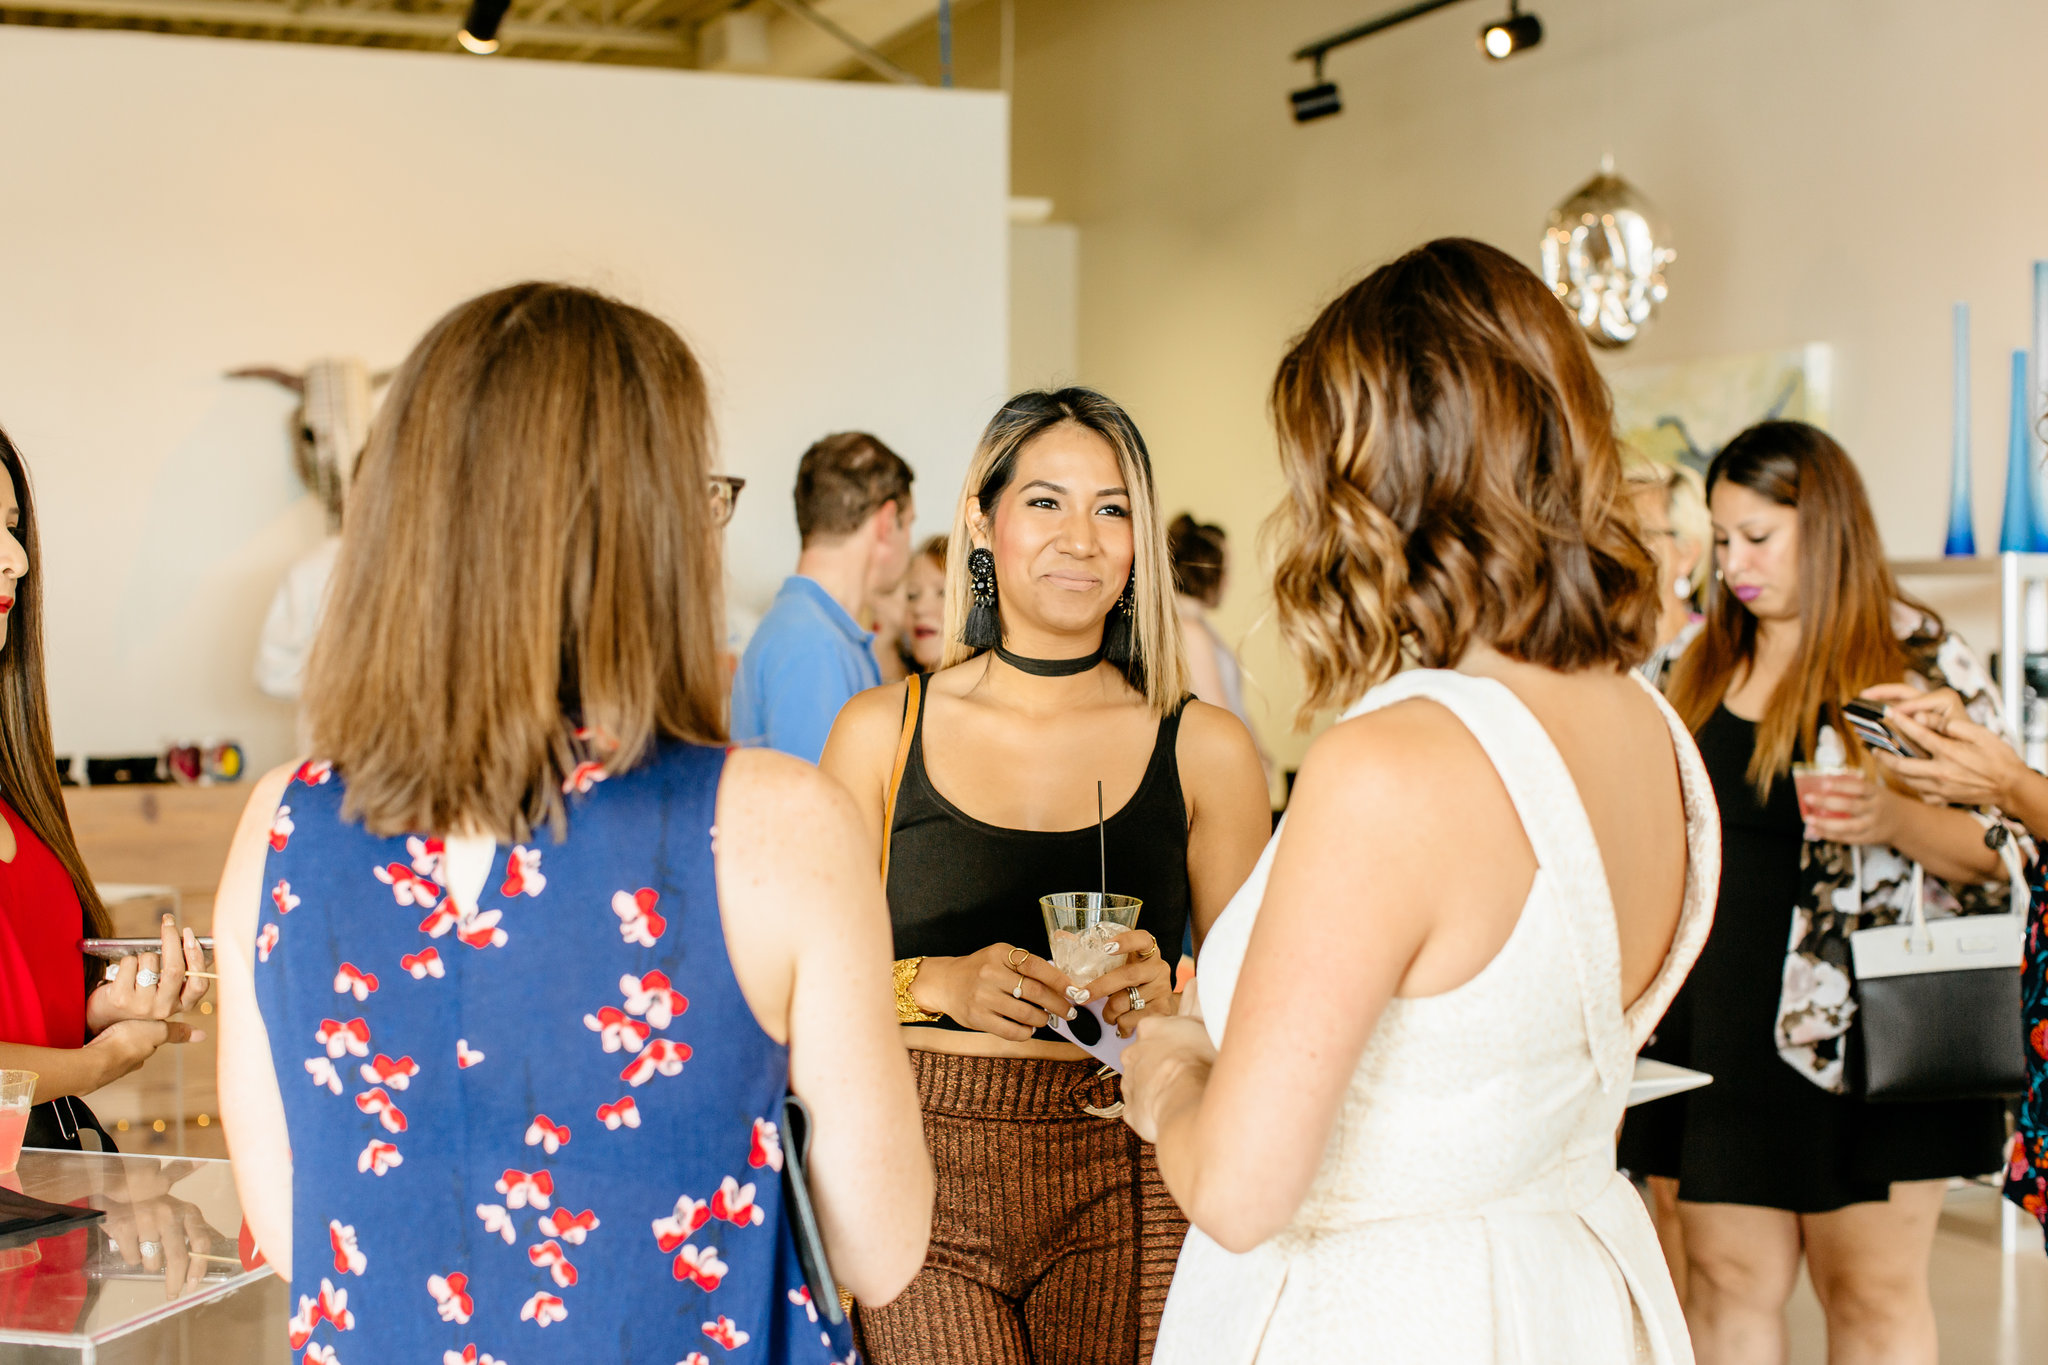 Alexa-Vossler-Photo_Dallas-Event-Photographer_Brite-Bar-Beauty-2018-Lipstick-Launch-Party-28.jpg